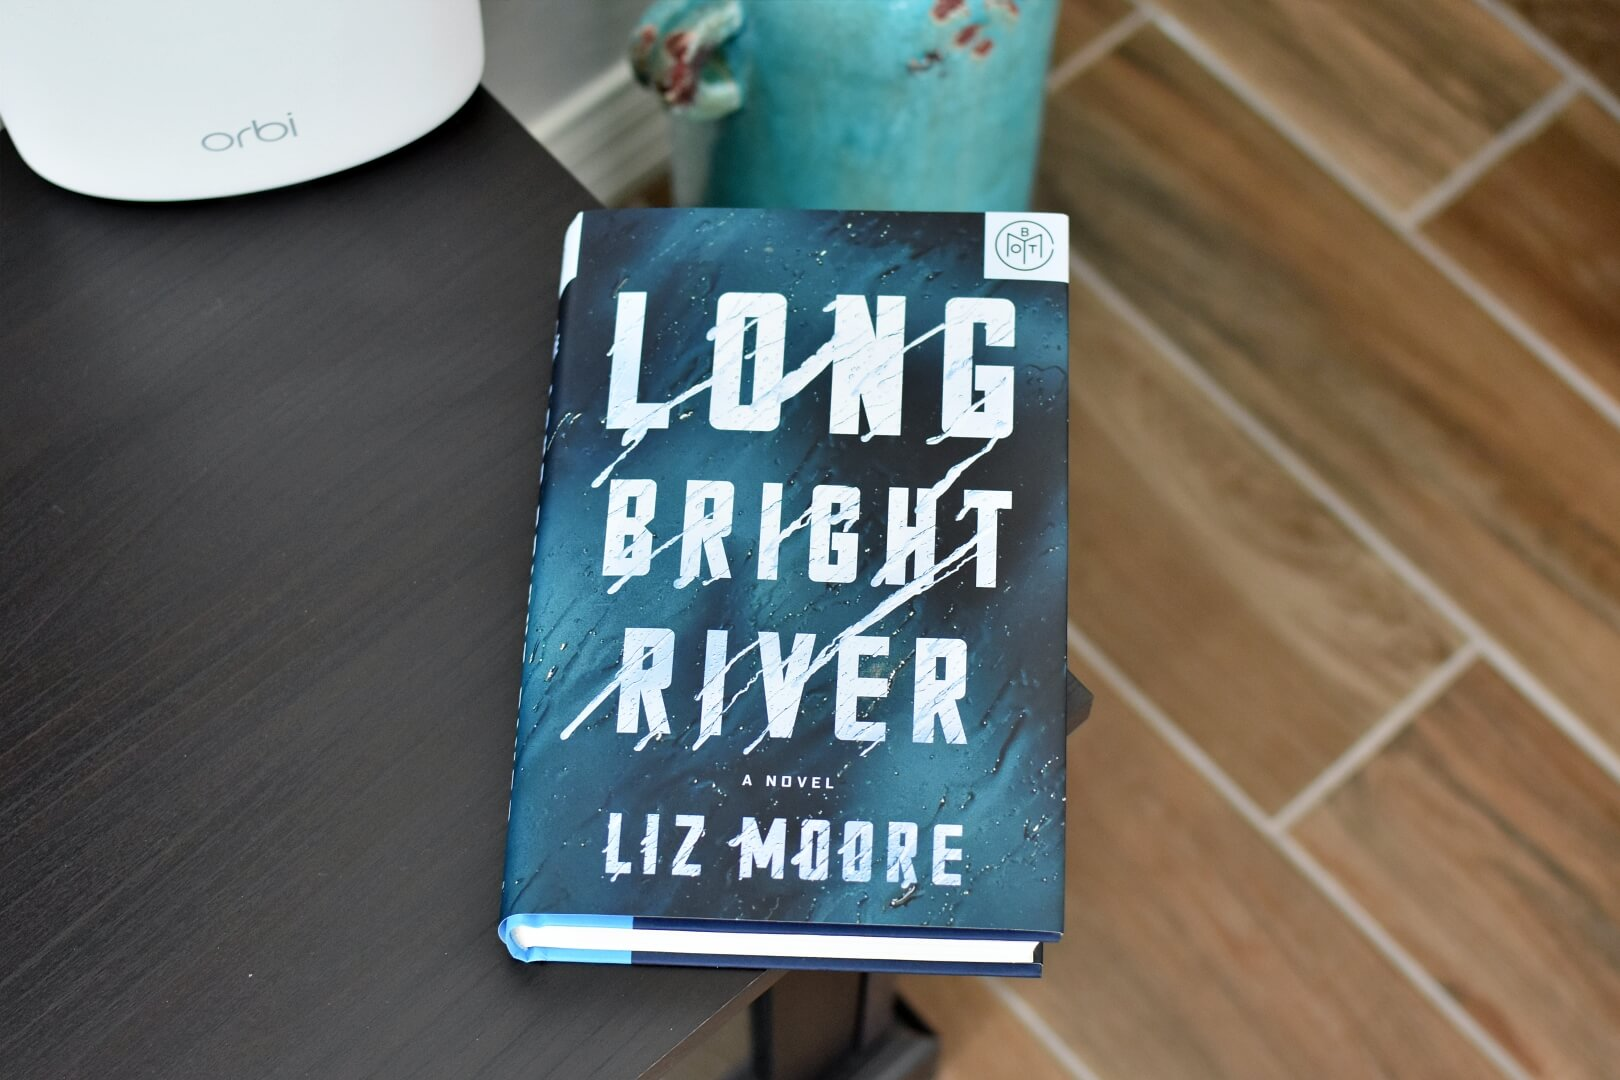 long bright river review - book club chat